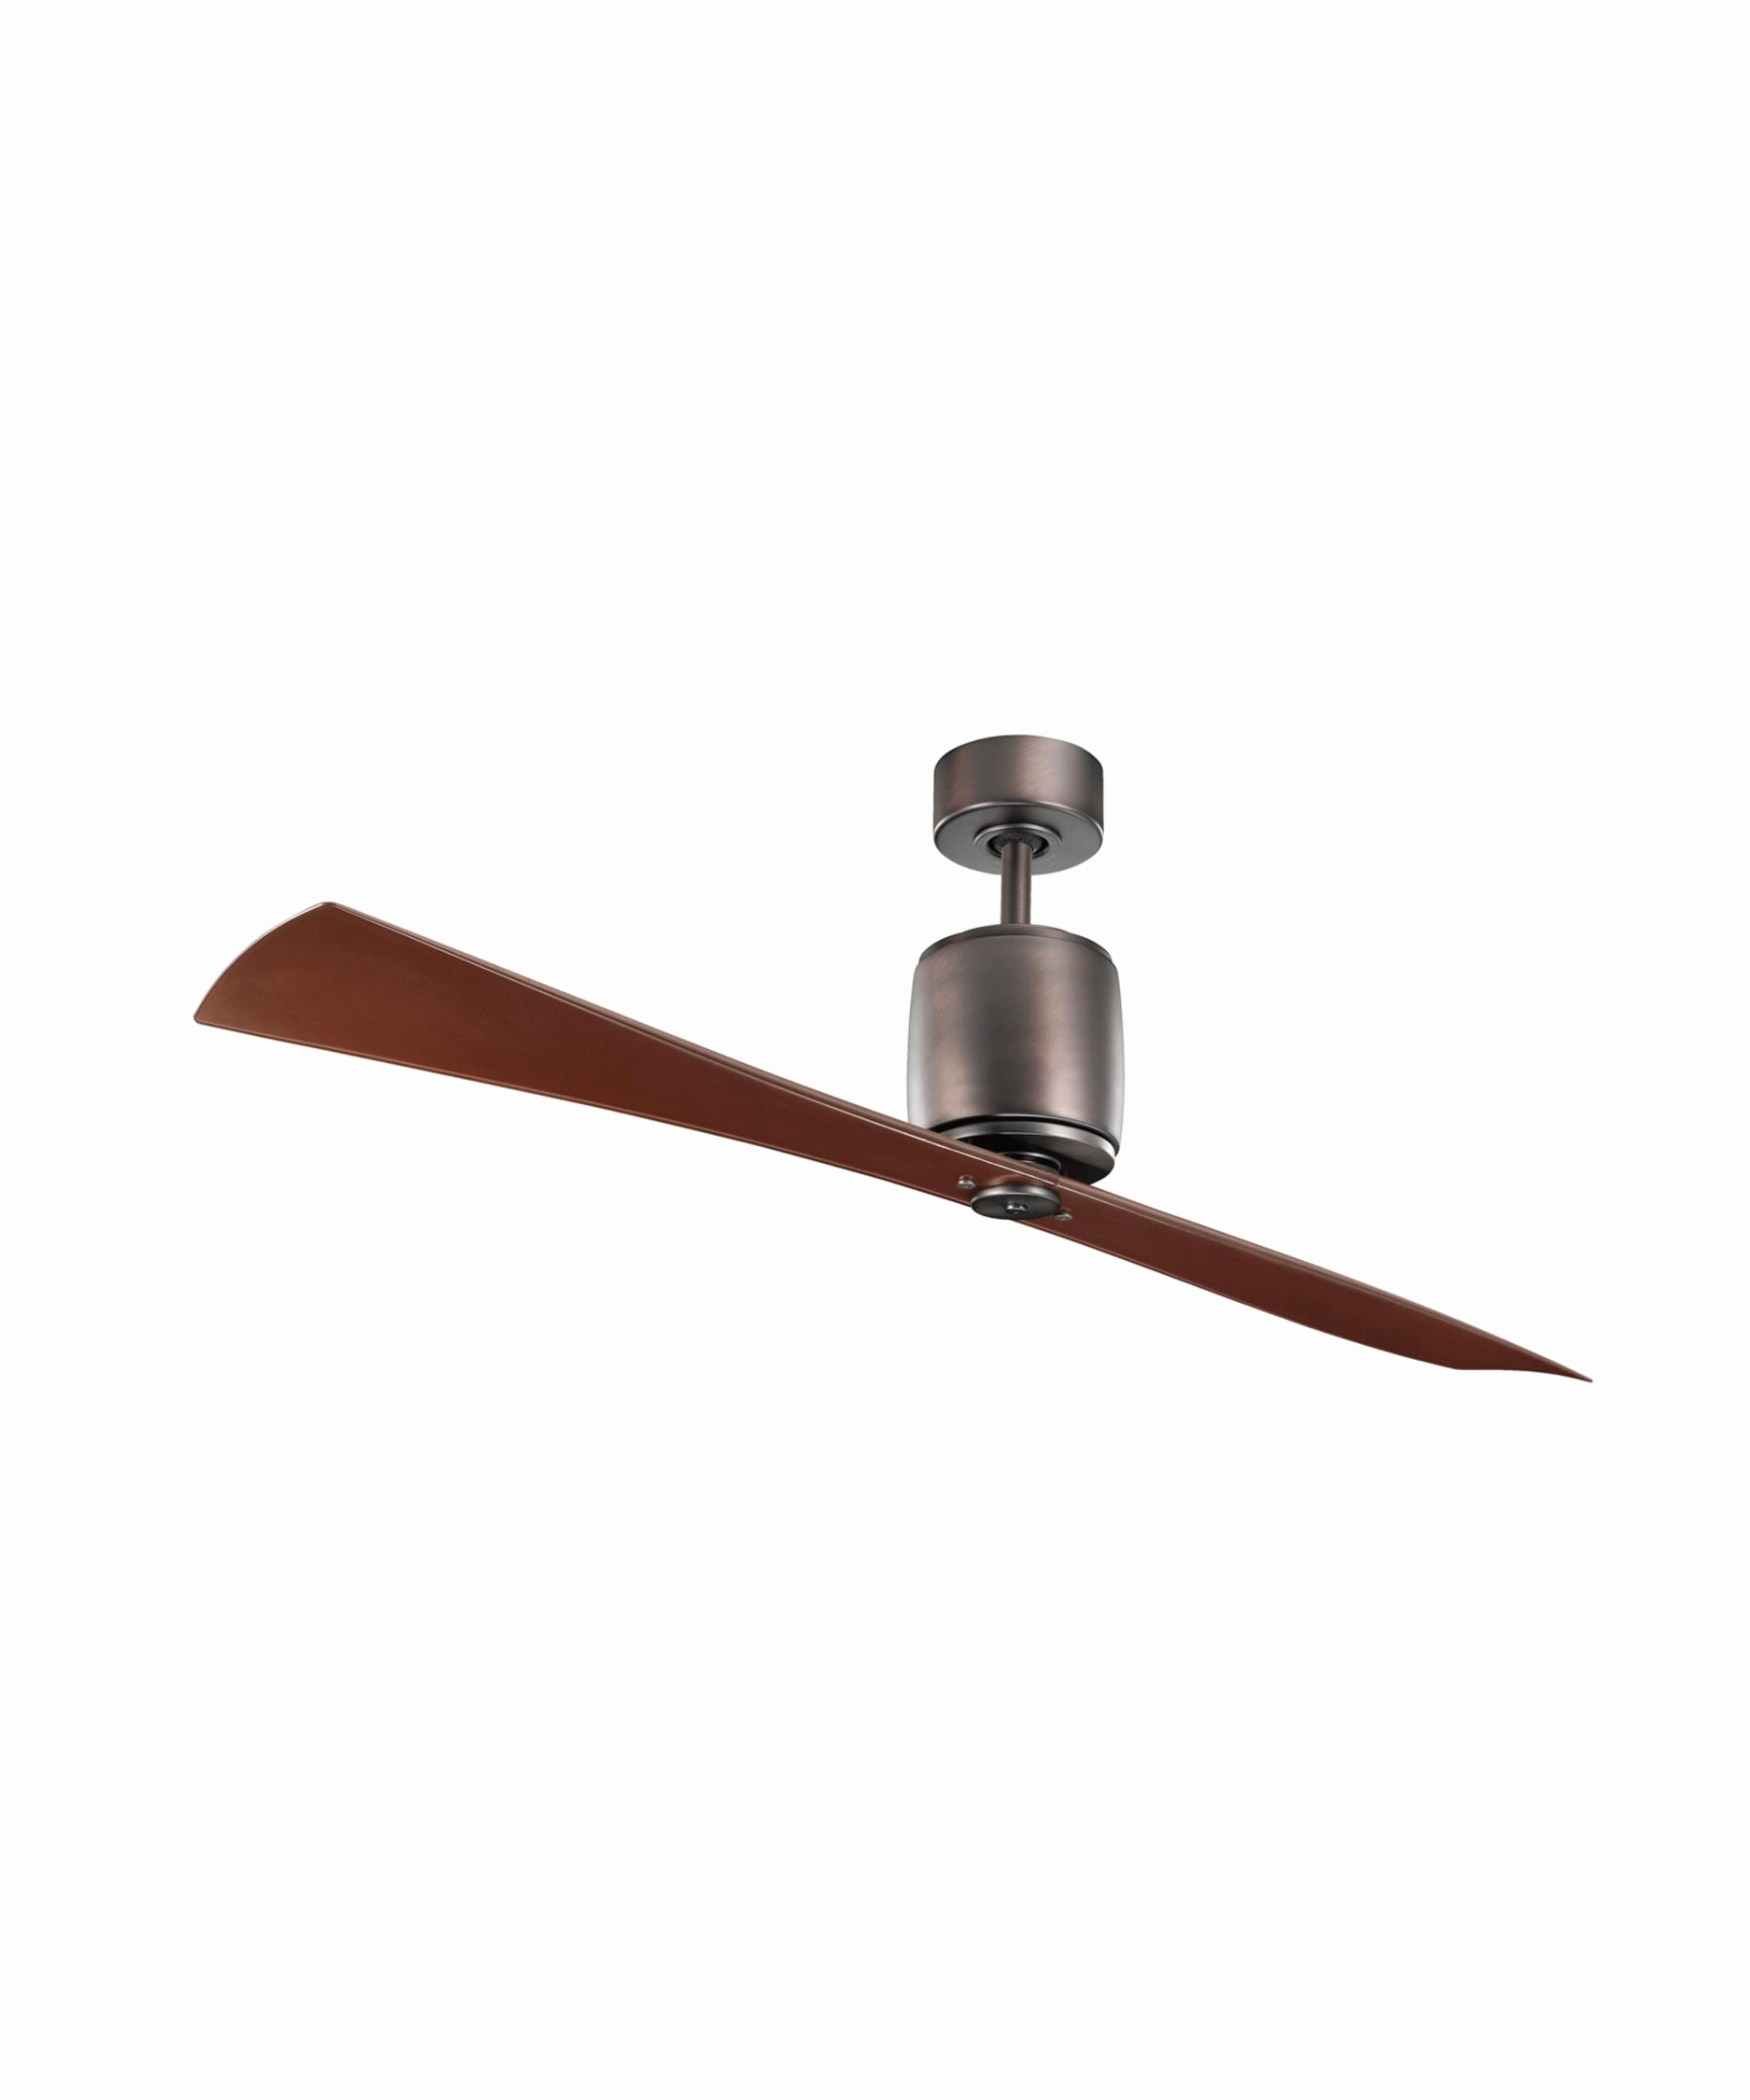 Well Known Kichler Outdoor Ceiling Fans With Lights Pertaining To Outdoor Led Ceiling Fan Awesome Kichler Ferron 60 Inch 2 Blade (View 11 of 20)